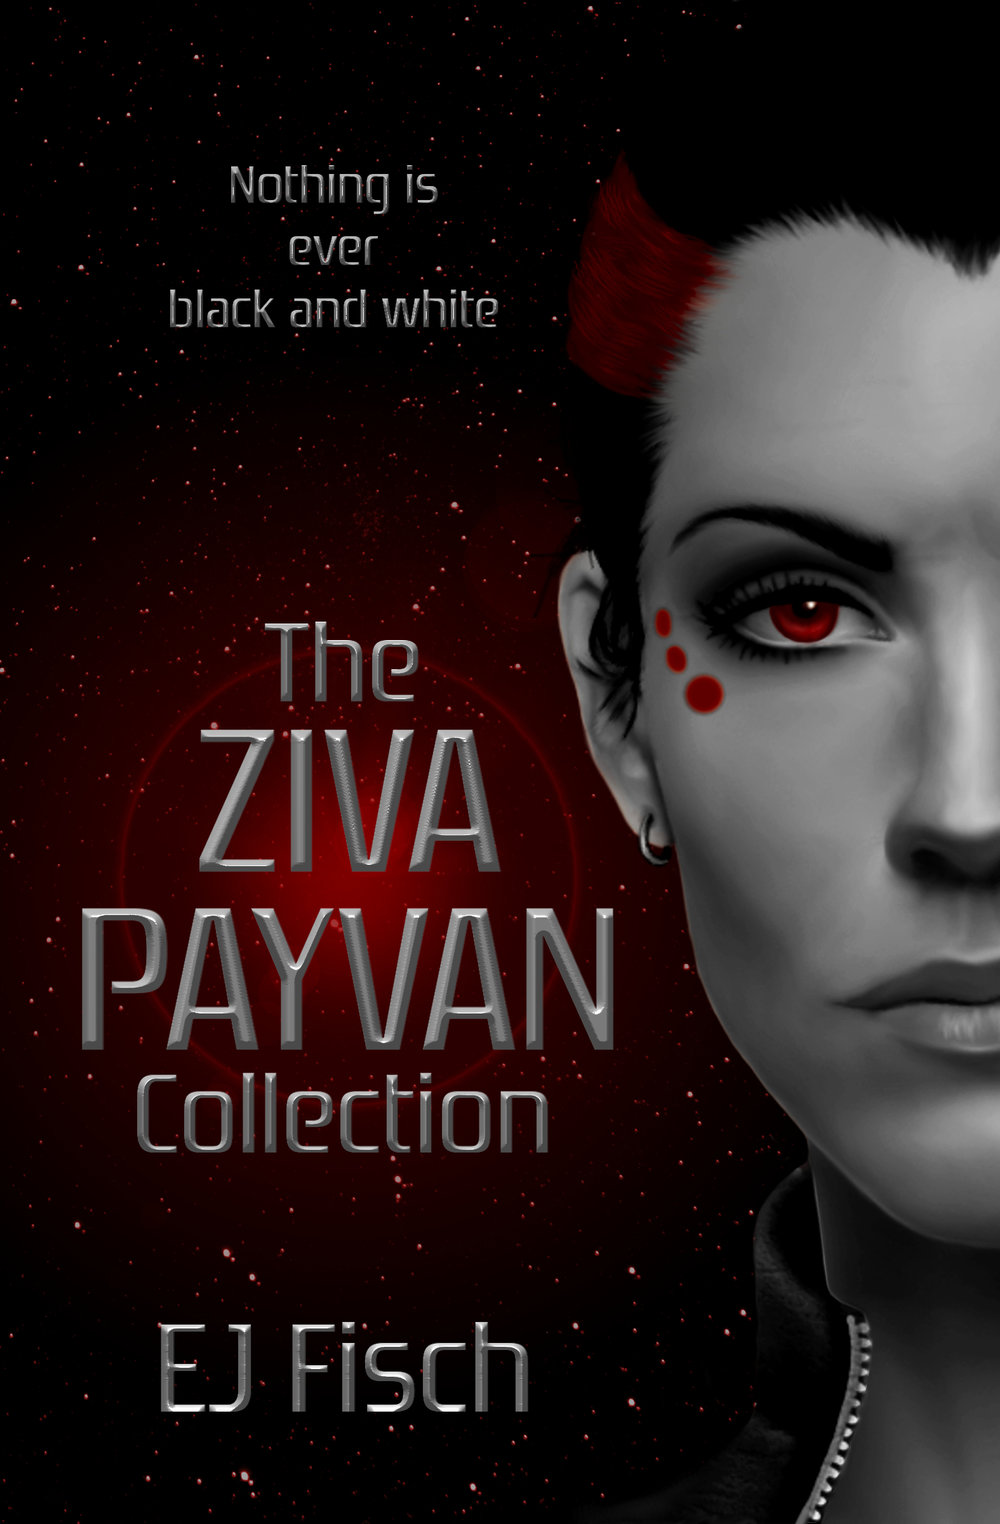 THE_ZIVA_PAYVAN_COLLECTION_cover.jpg